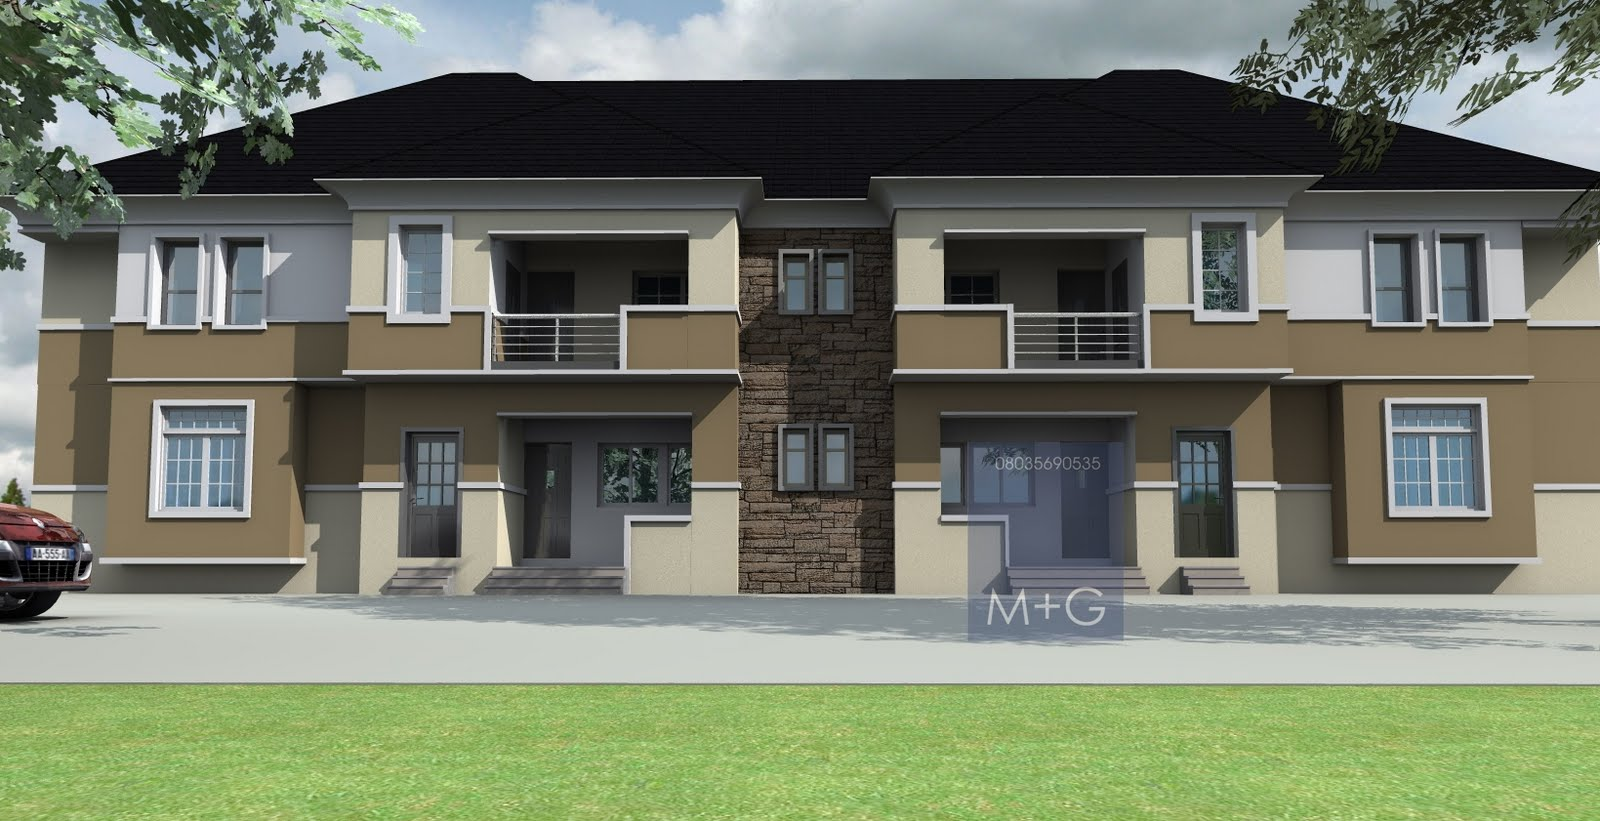 Contemporary nigerian residential architecture 4 units of for 3 bedroom architectural designs